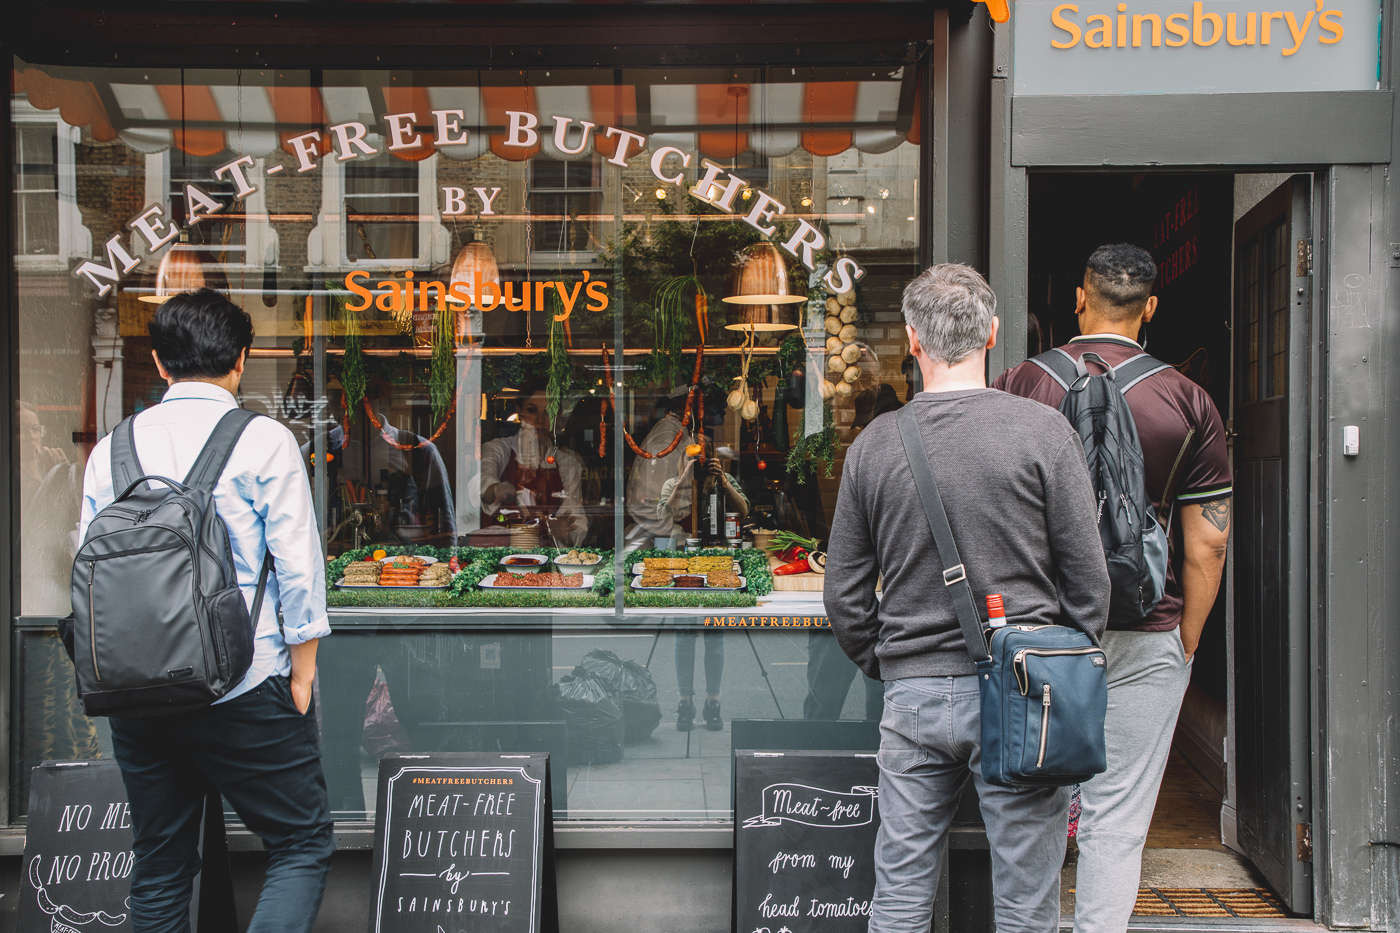 Sainsbury's, pop up, how to build a pop up, London pop up, things to see in London, short-term retail, meat-free, plant-based